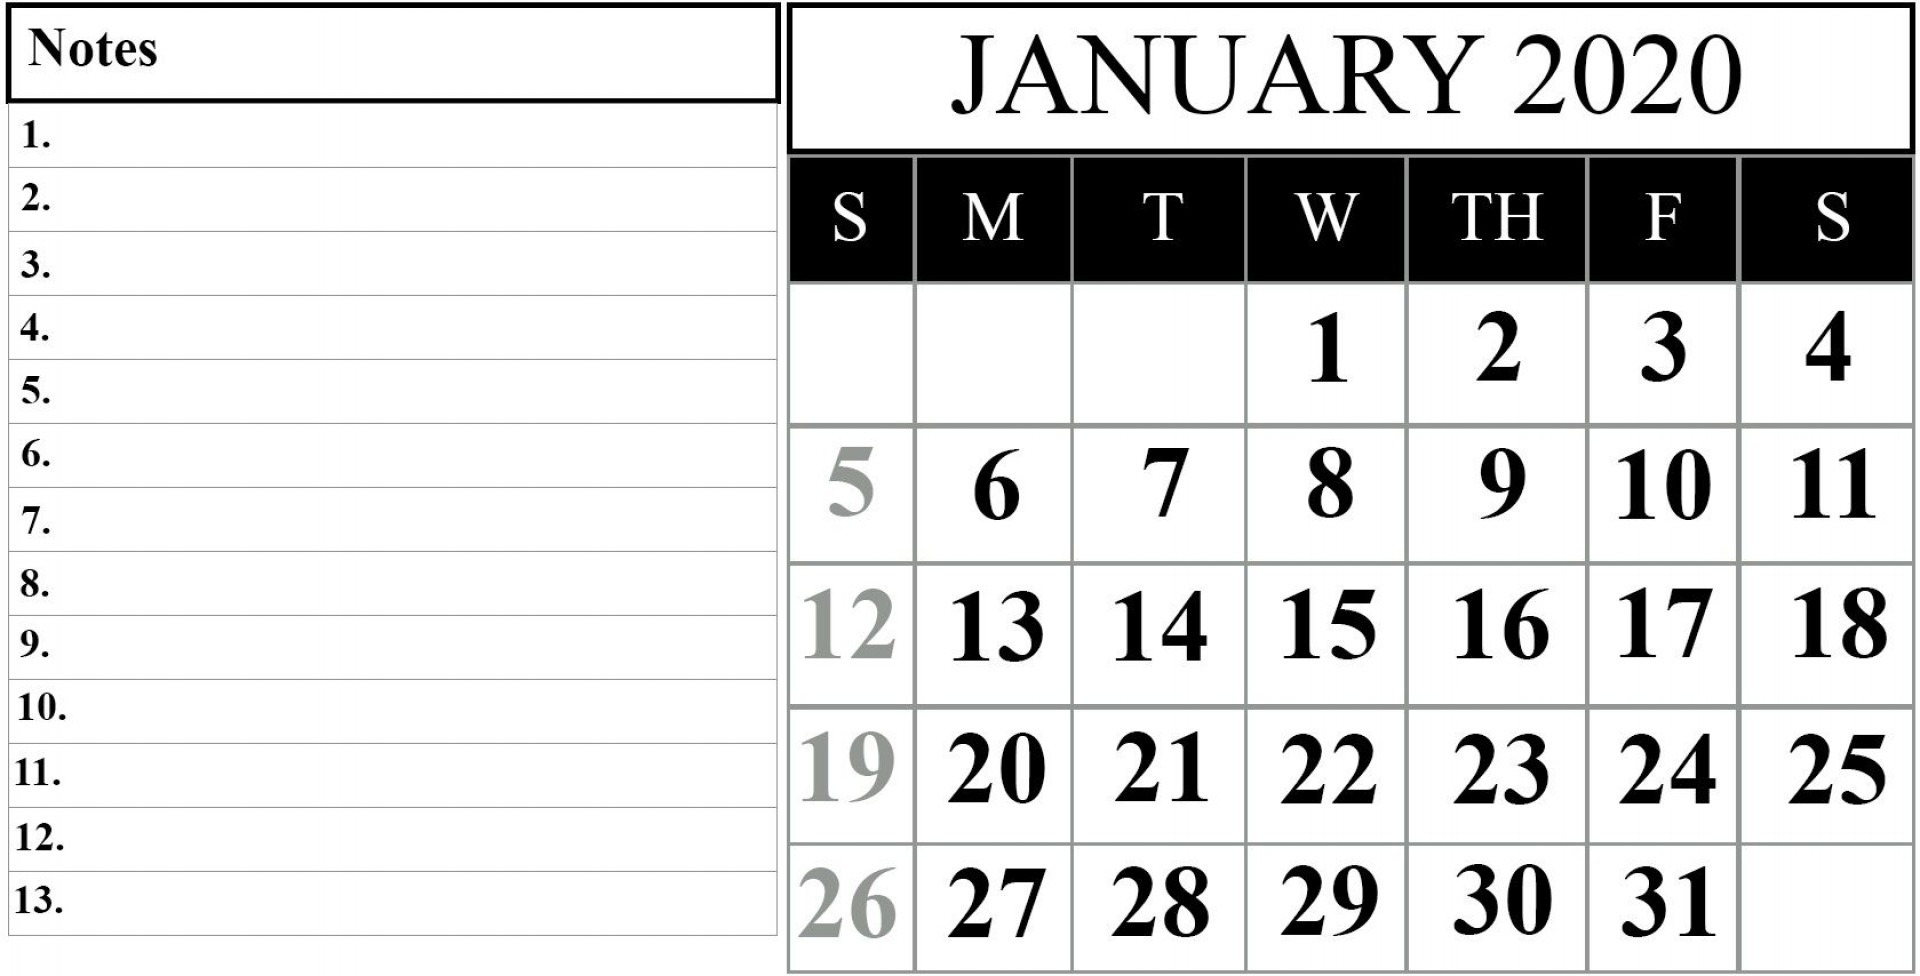 000 Remarkable 2020 Blank Calendar Template High Definition  Printable Monthly Word Downloadable With Holiday1920